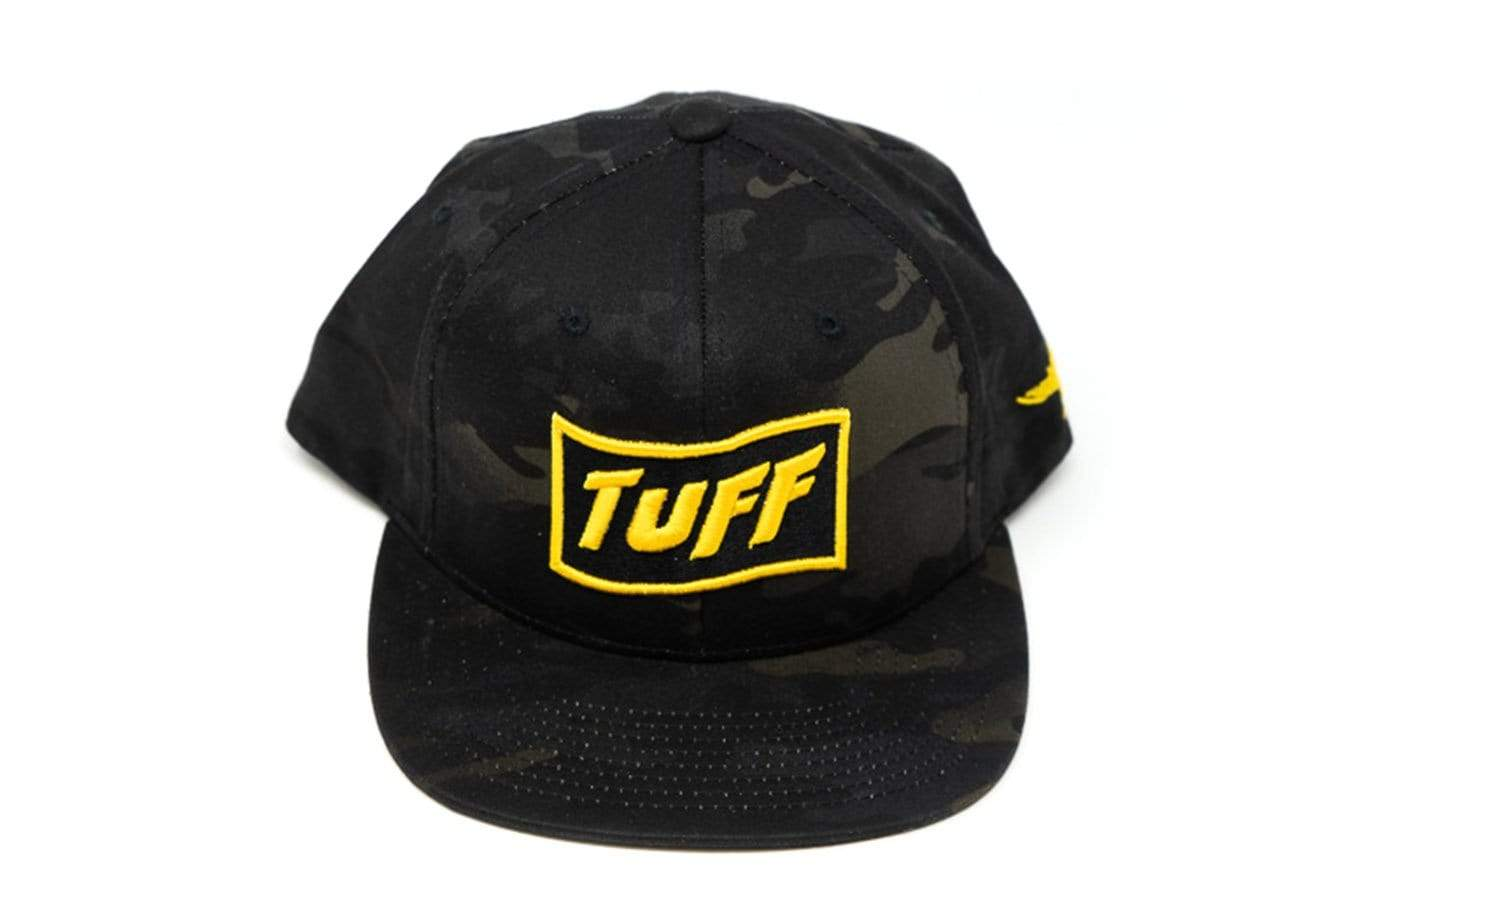 TUFF High Octane Multi Camo Snapback Hat - Yellow TuffWraps.com